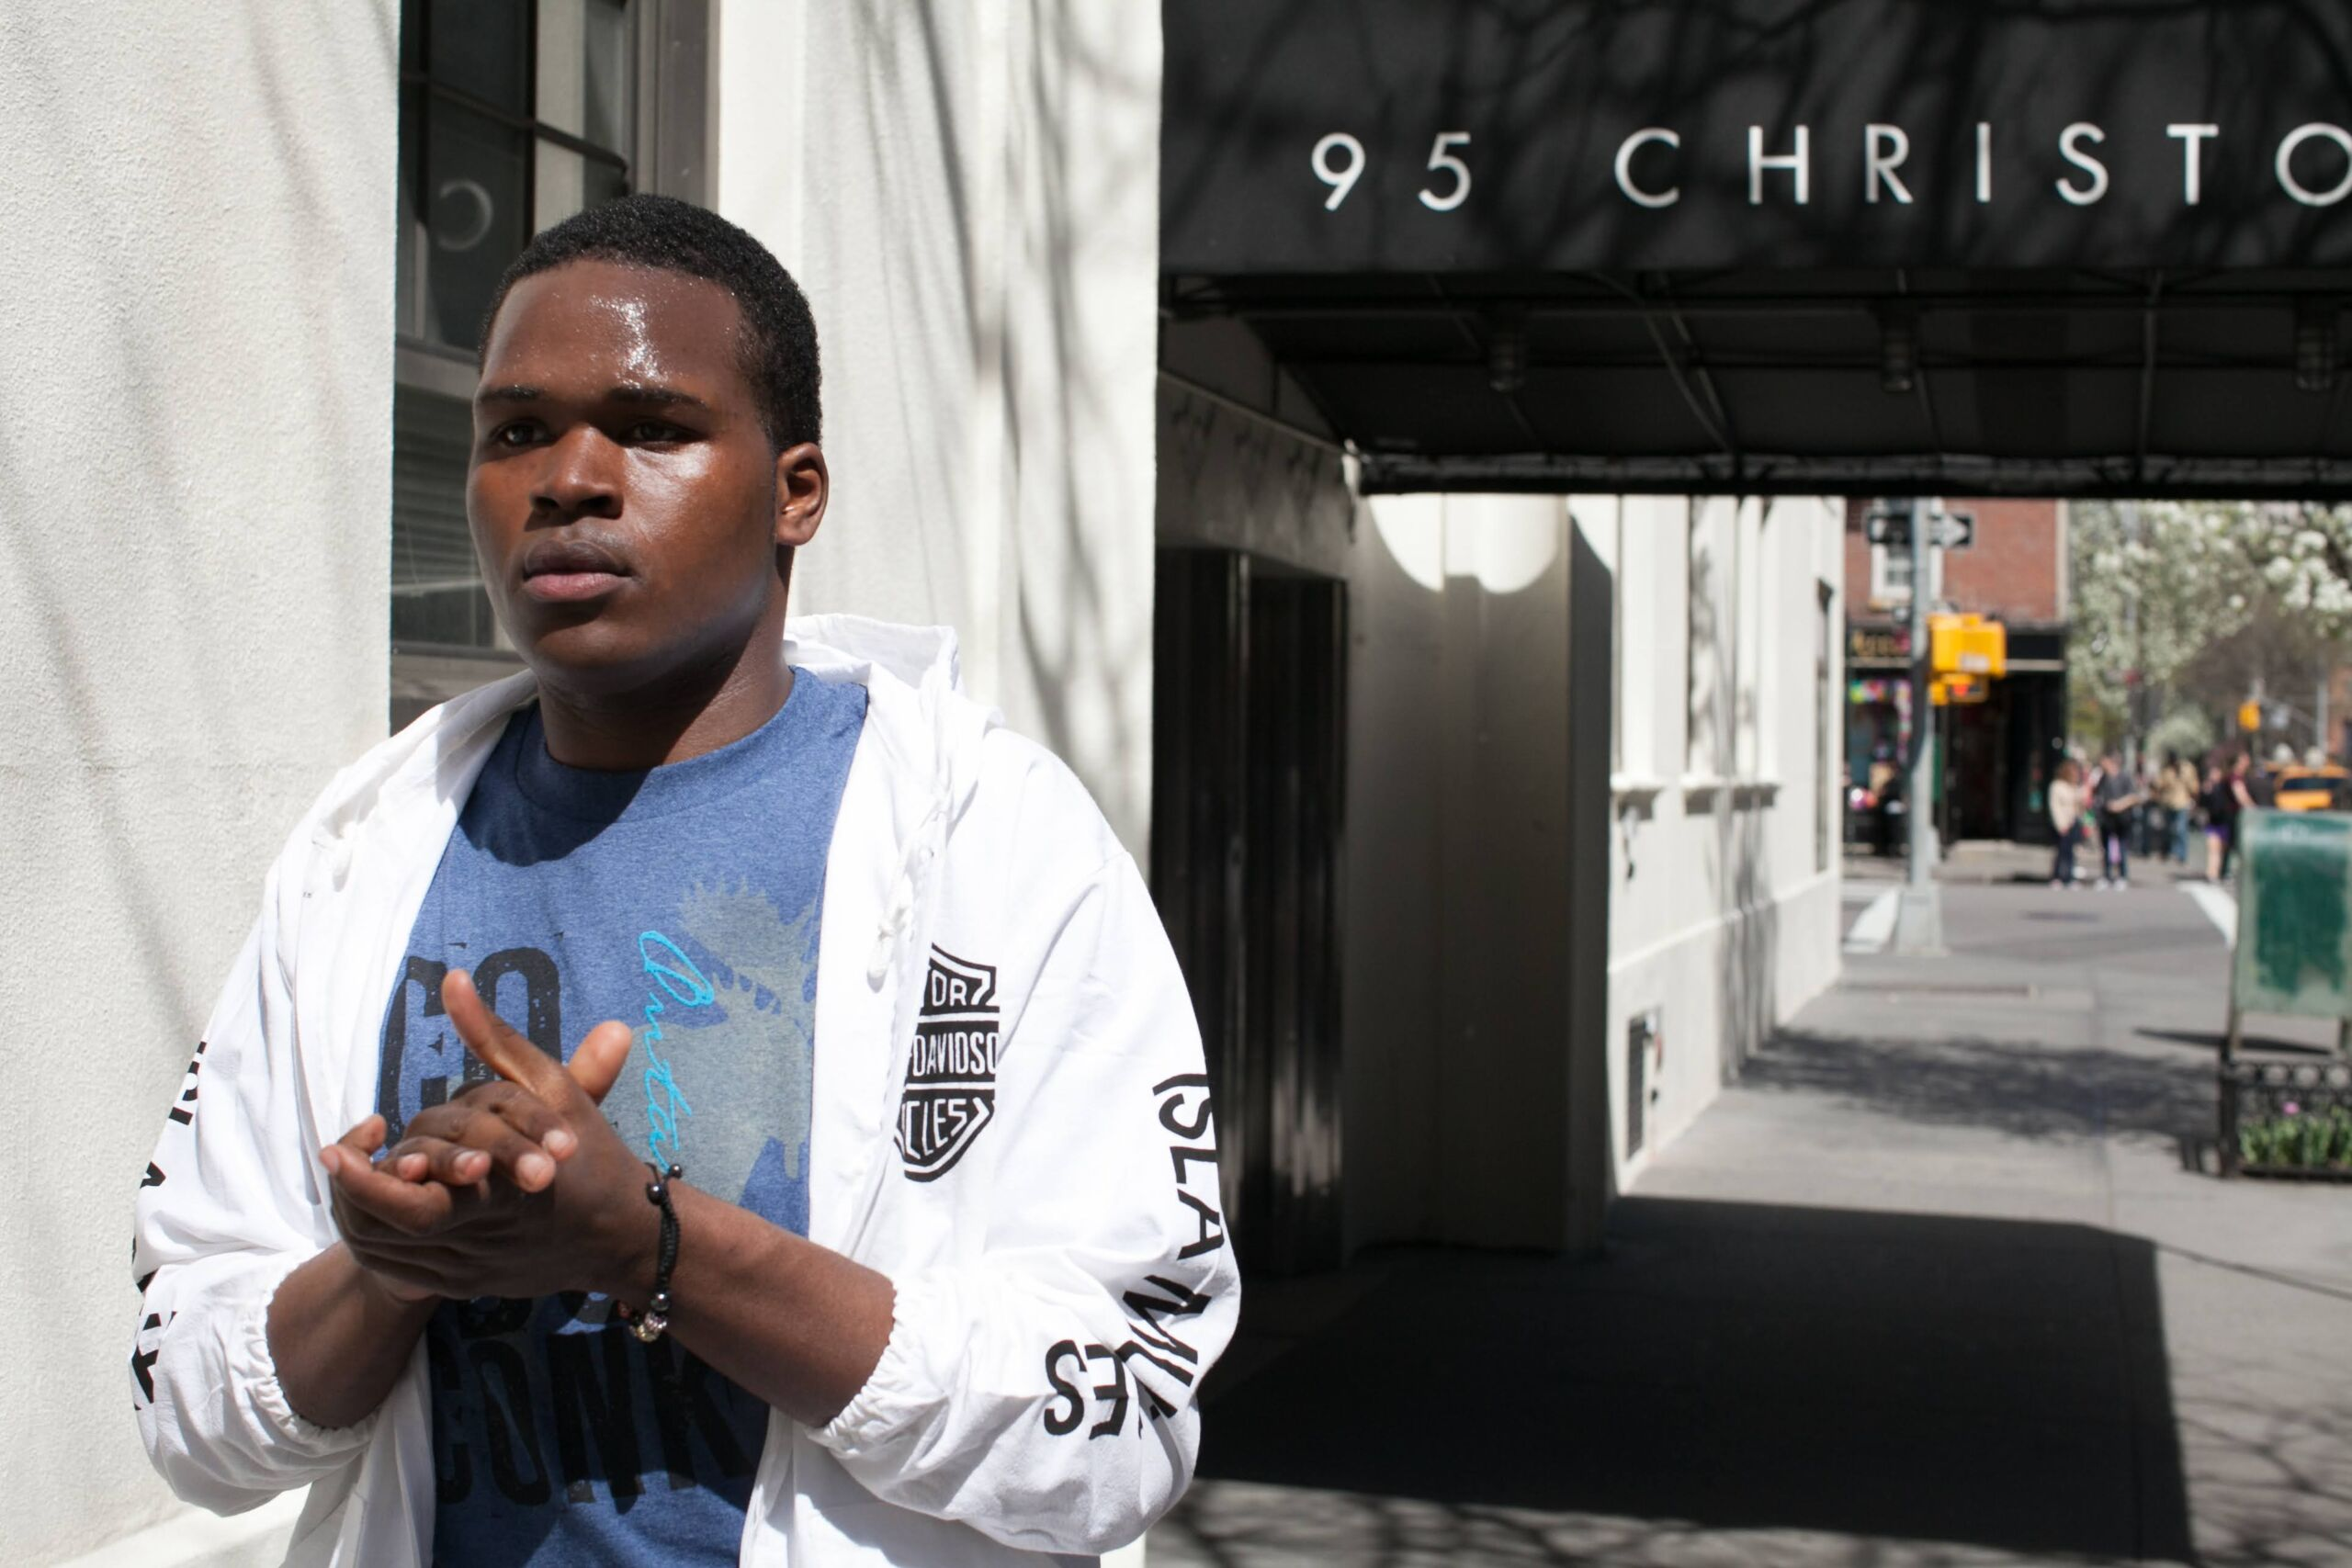 A Black youth in blue t-shirt and bright white zip hoodie walks past building awning that says 95 Christopher